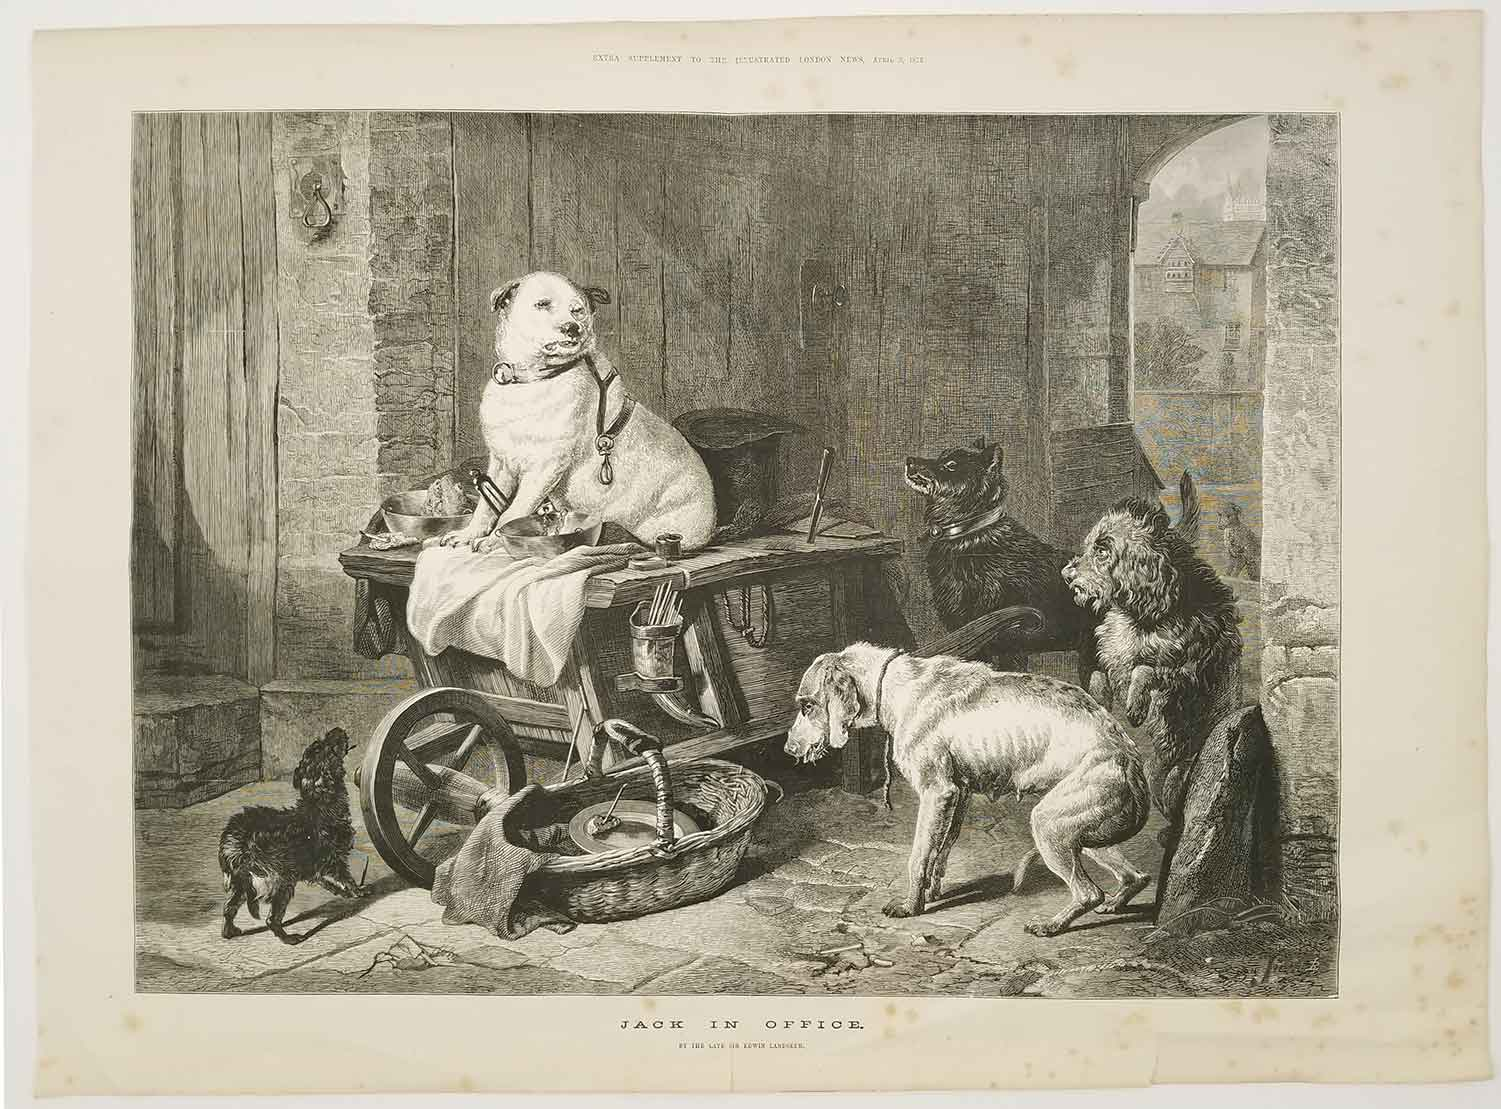 Jack in Office. LANDSEER) Landseer, Edwin, R. A. (illus)